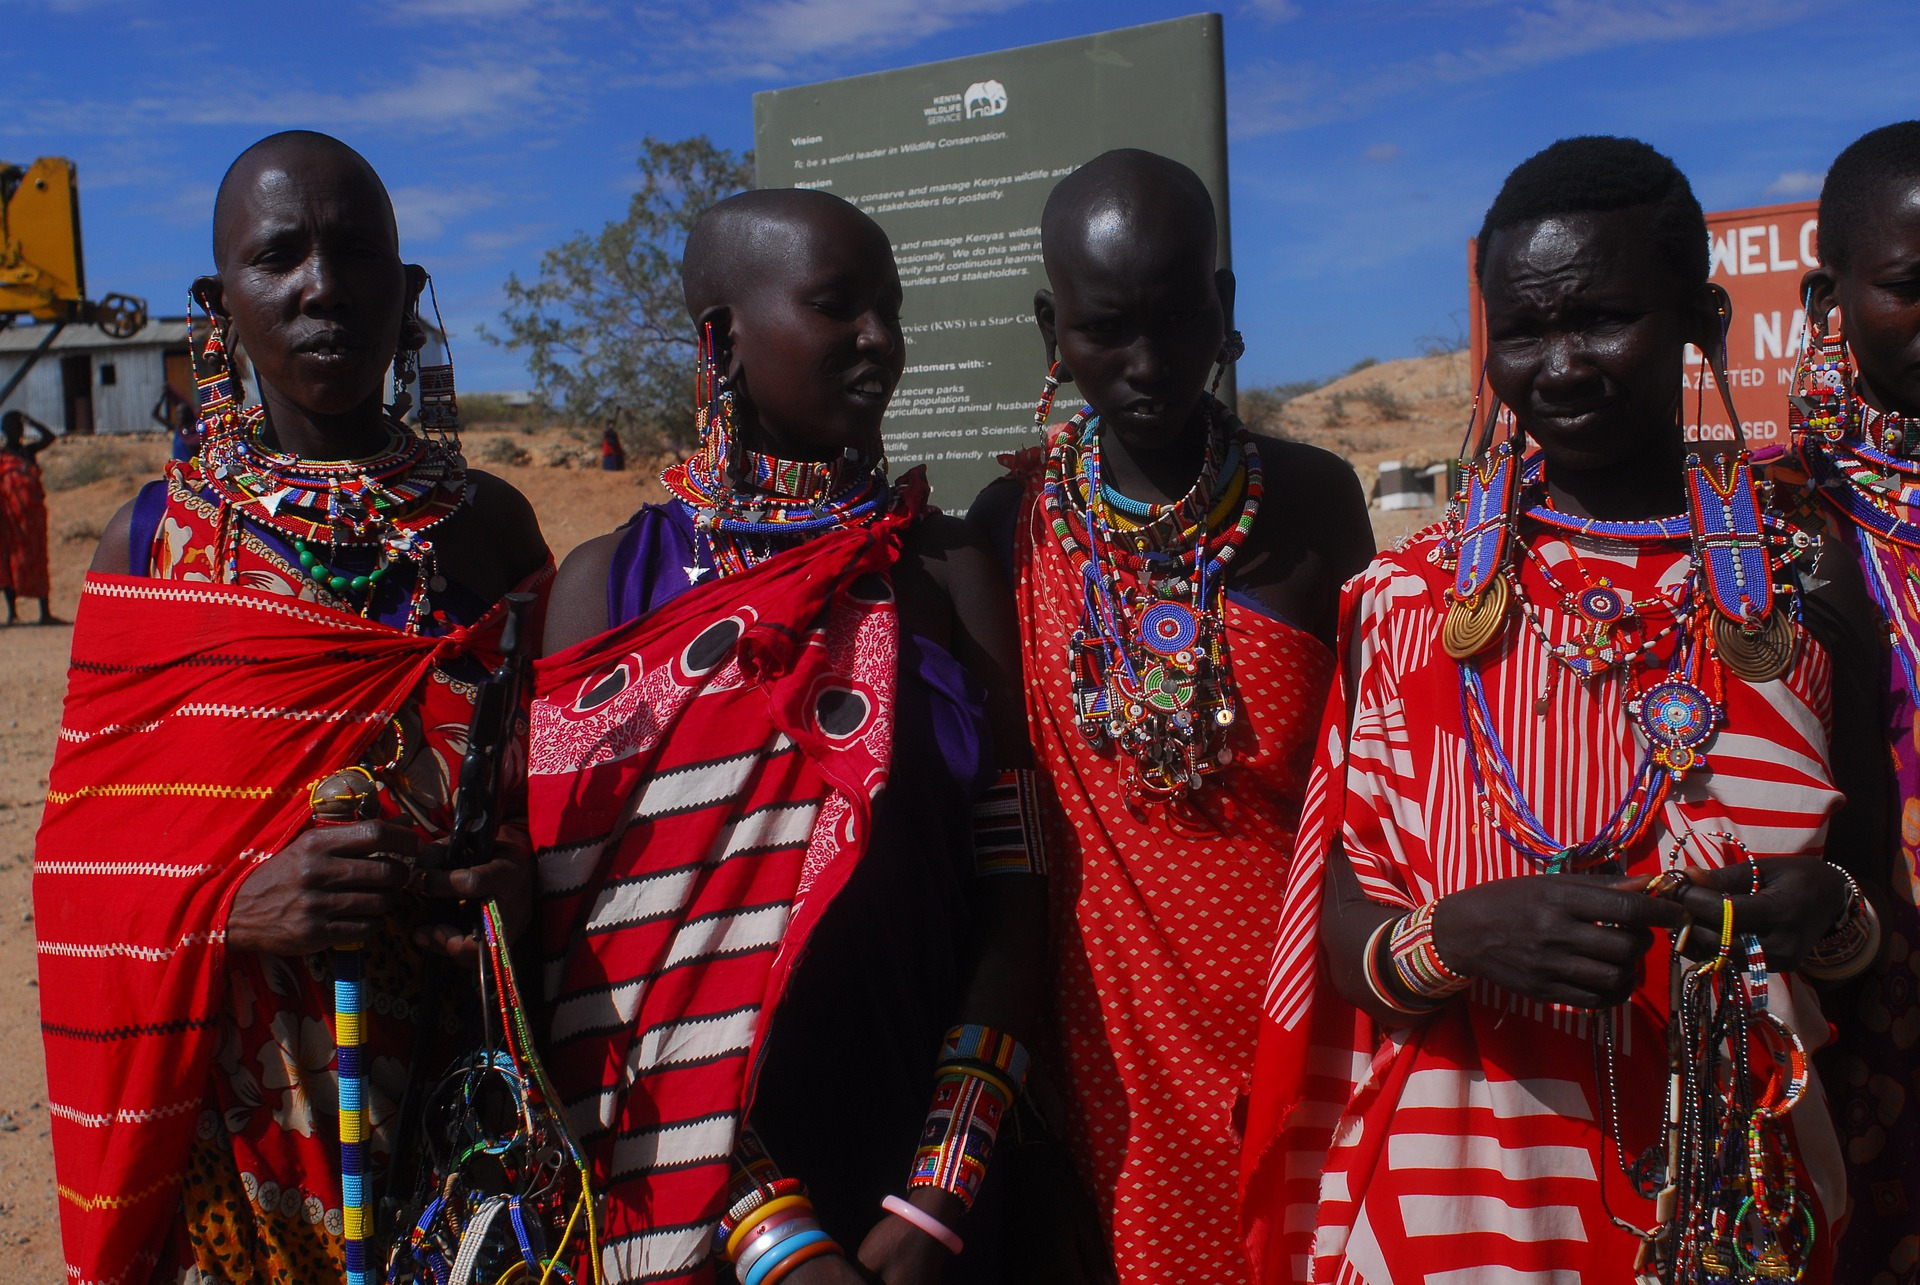 Kenya court dismisses petition to allow female genital mutilation for consenting adults